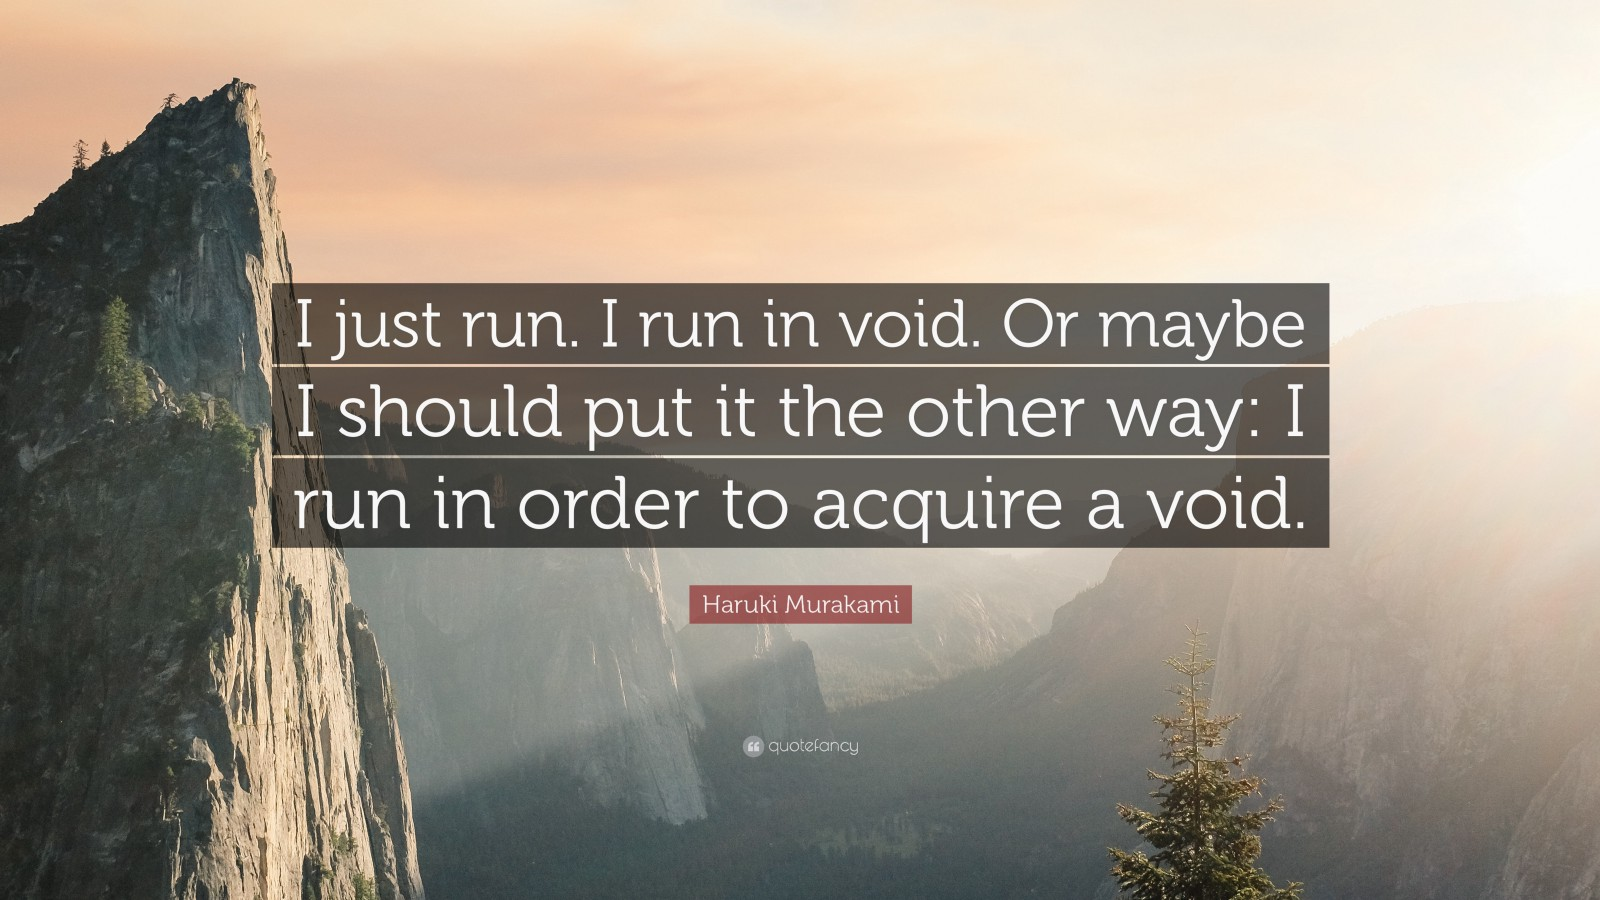 A quote about running by Haruki Murakami